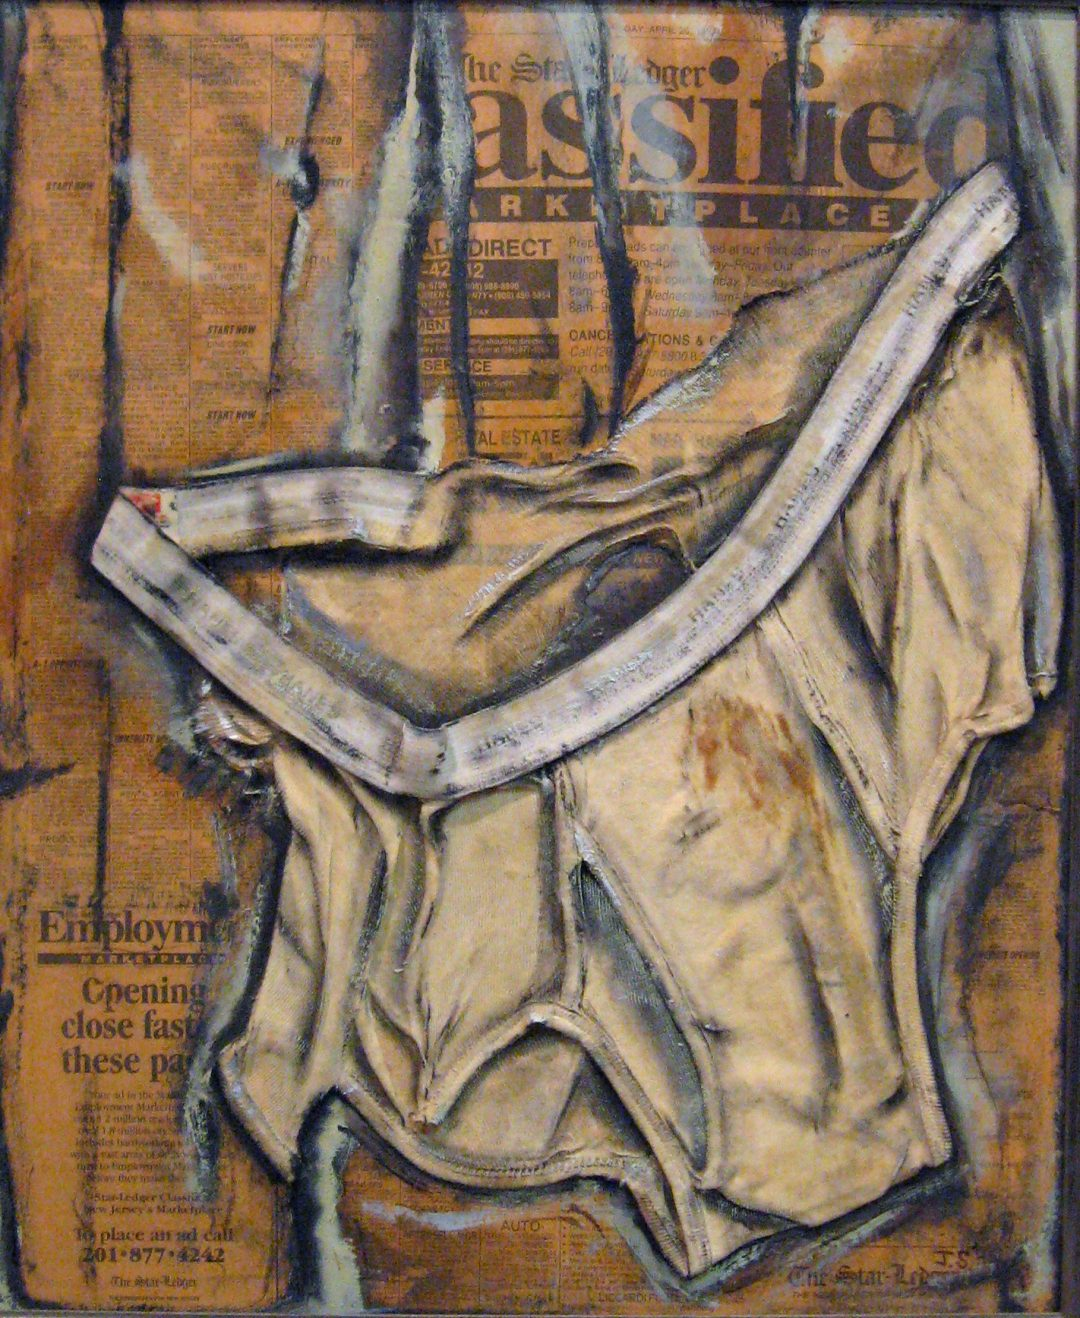 Assified – collage on canvas with men's briefs, job ads, oil paint – 18″ W x 22″ H